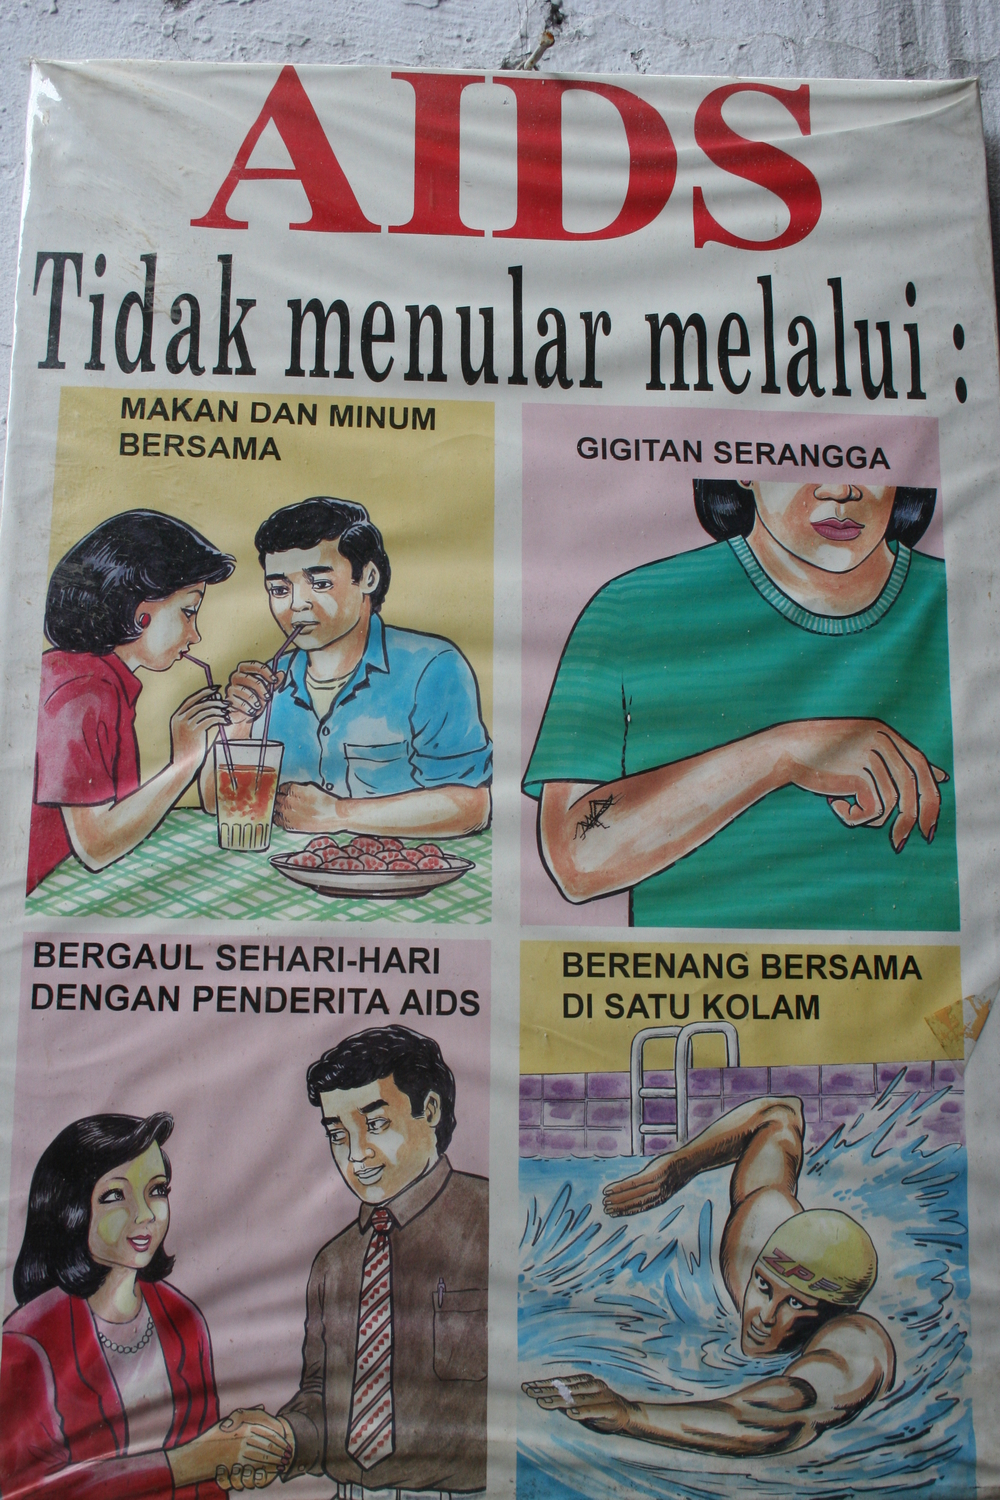 AIDS campaign, Indonesia.